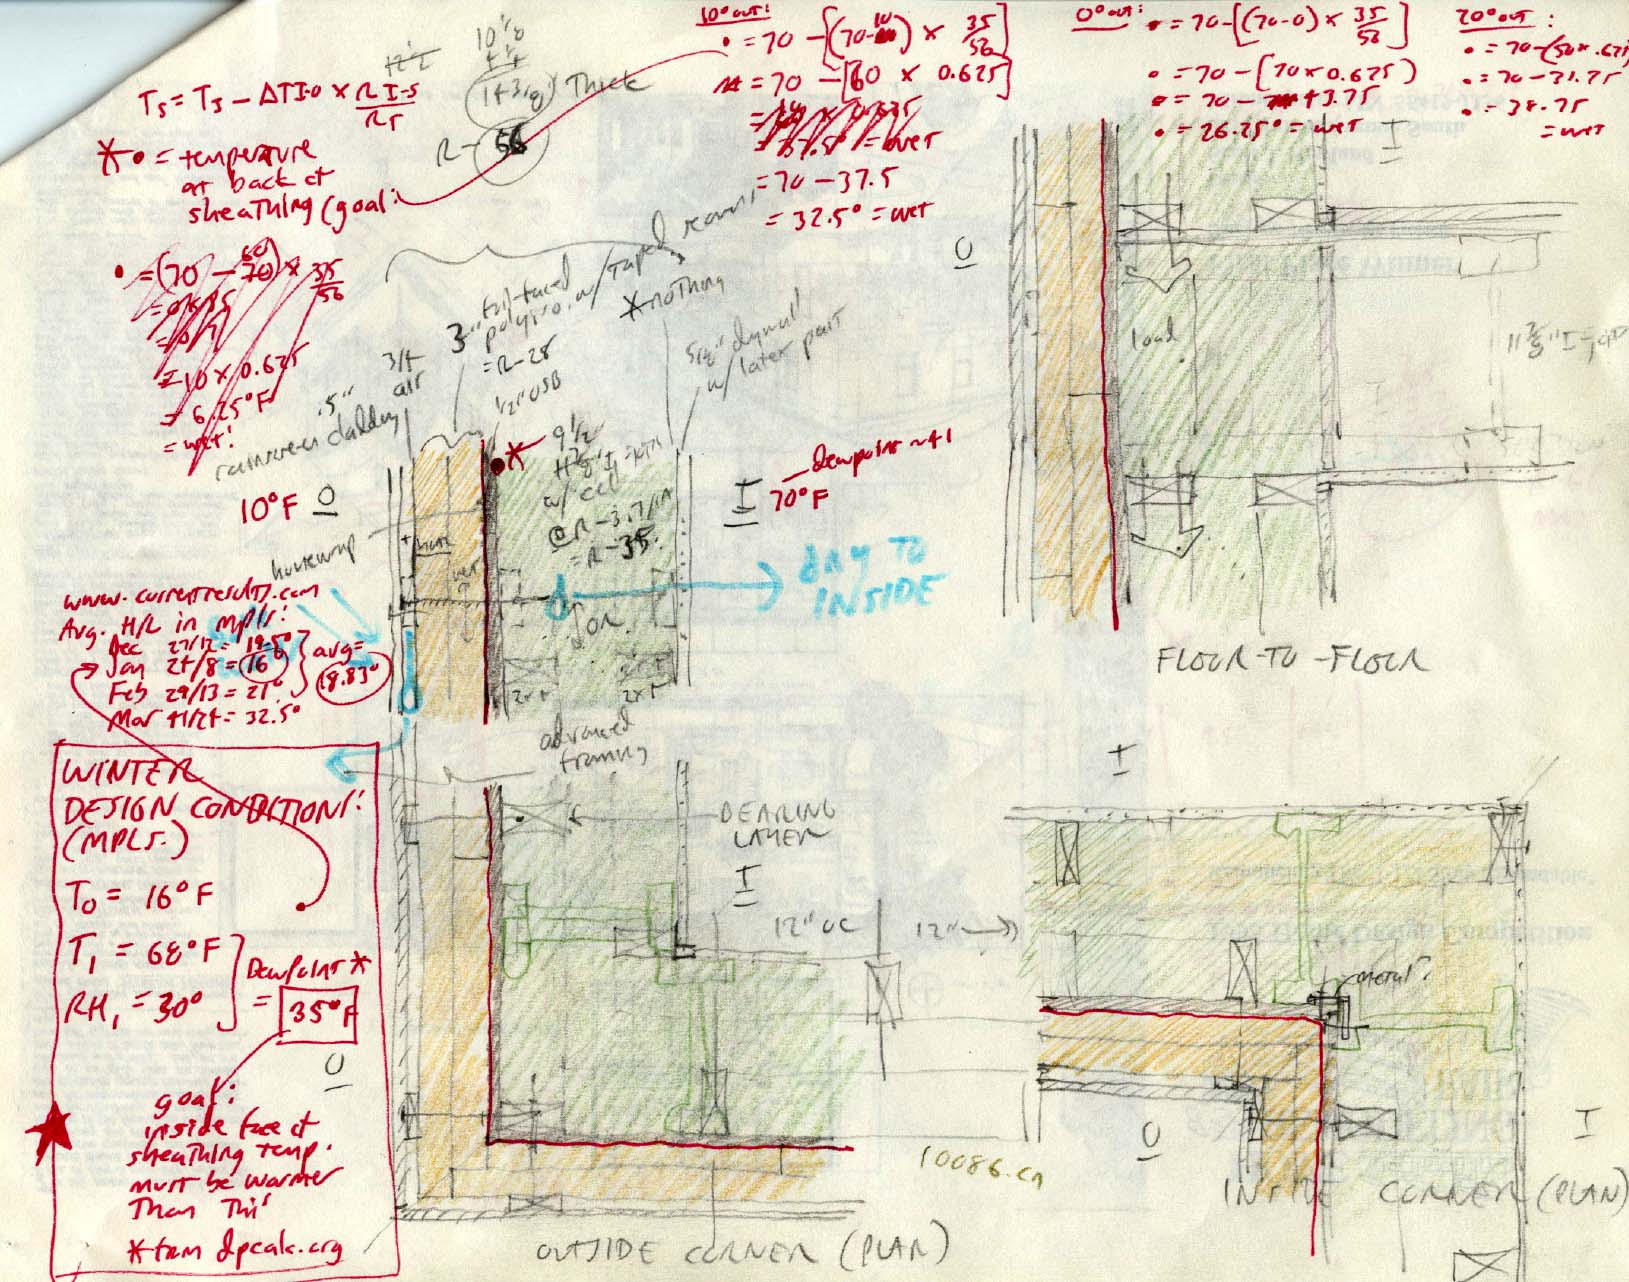 112413 dewpoint and insulation studies.jpg